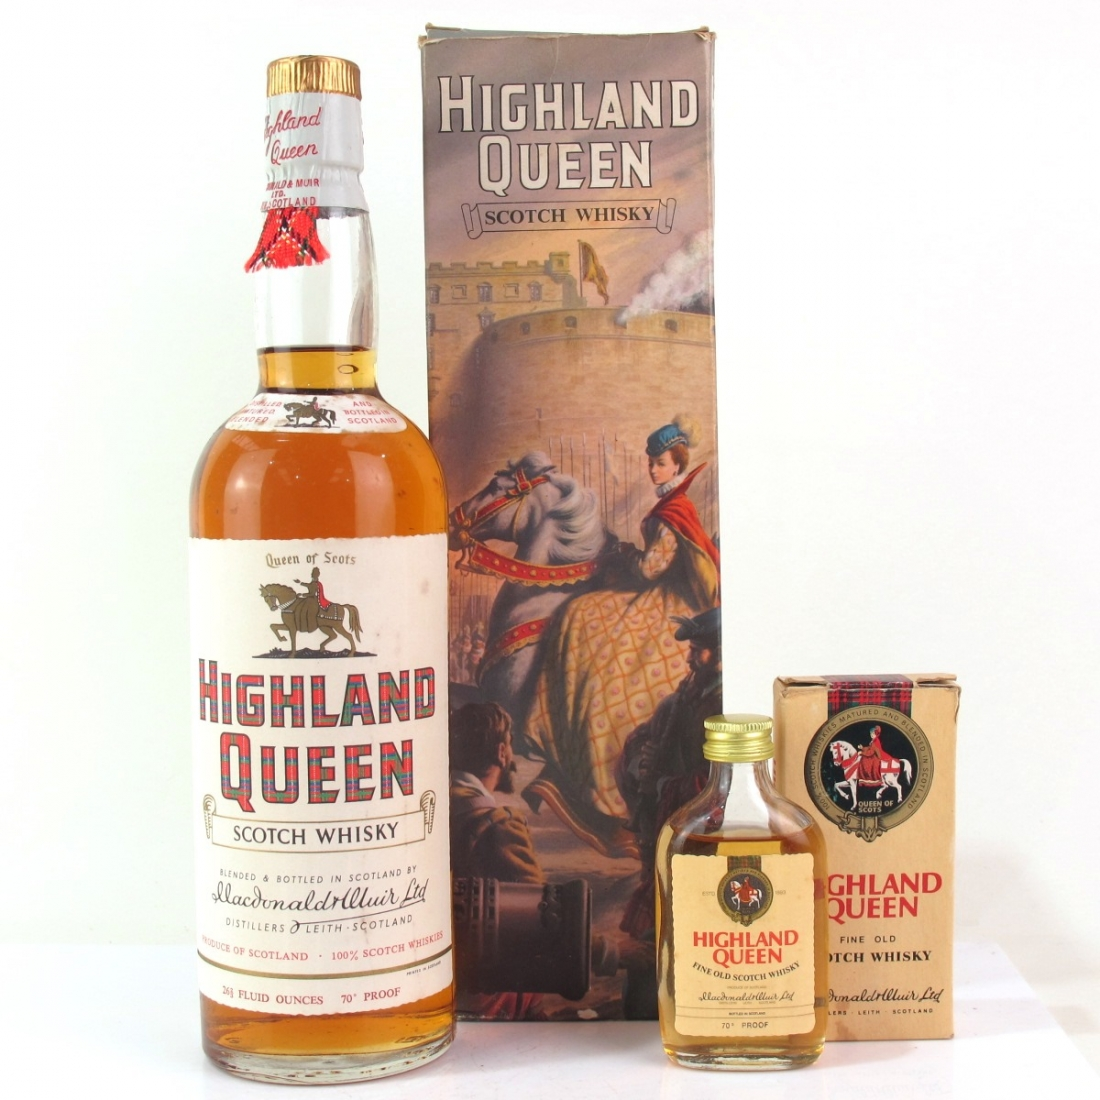 Highland Queen Scotch Whisky 1960/70s / includes Miniature